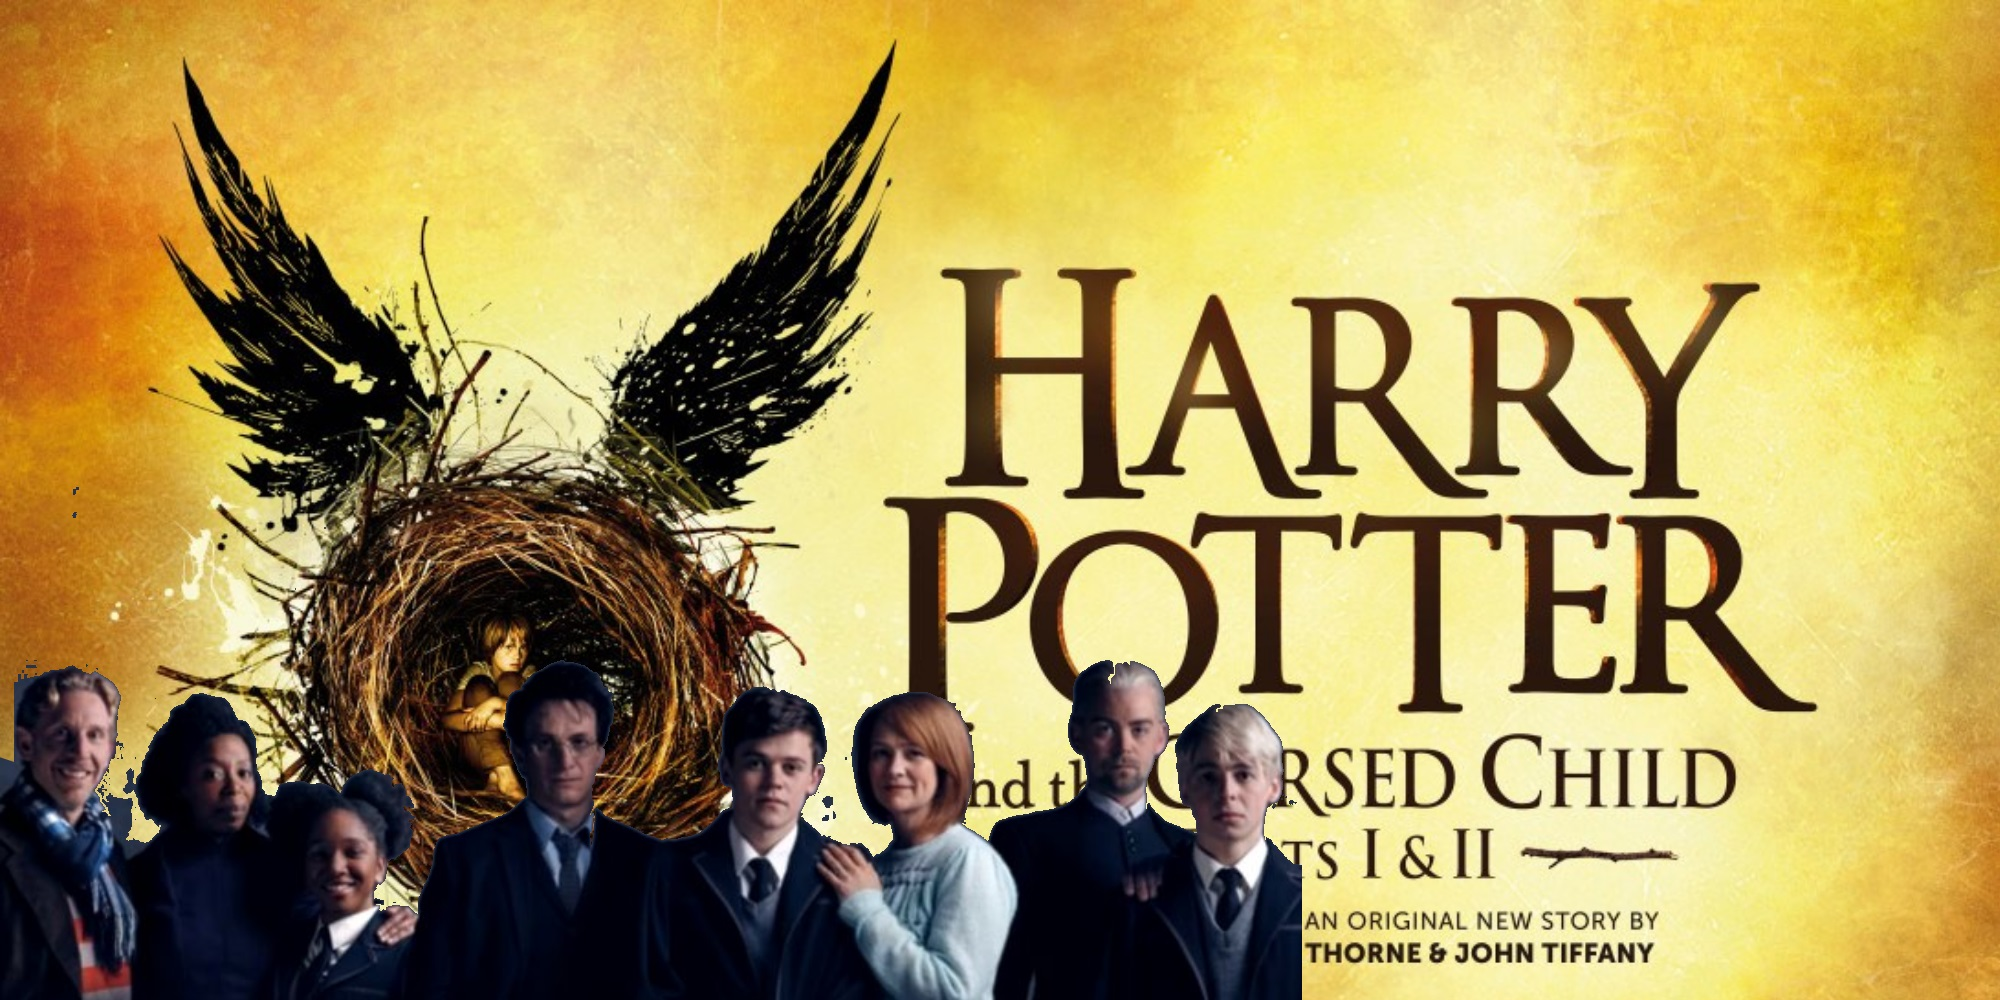 Libro De Harry Potter Y El Niño Maldito En Español 39harry Potter And The Cursed Child 39 Se Filtró Una Copia